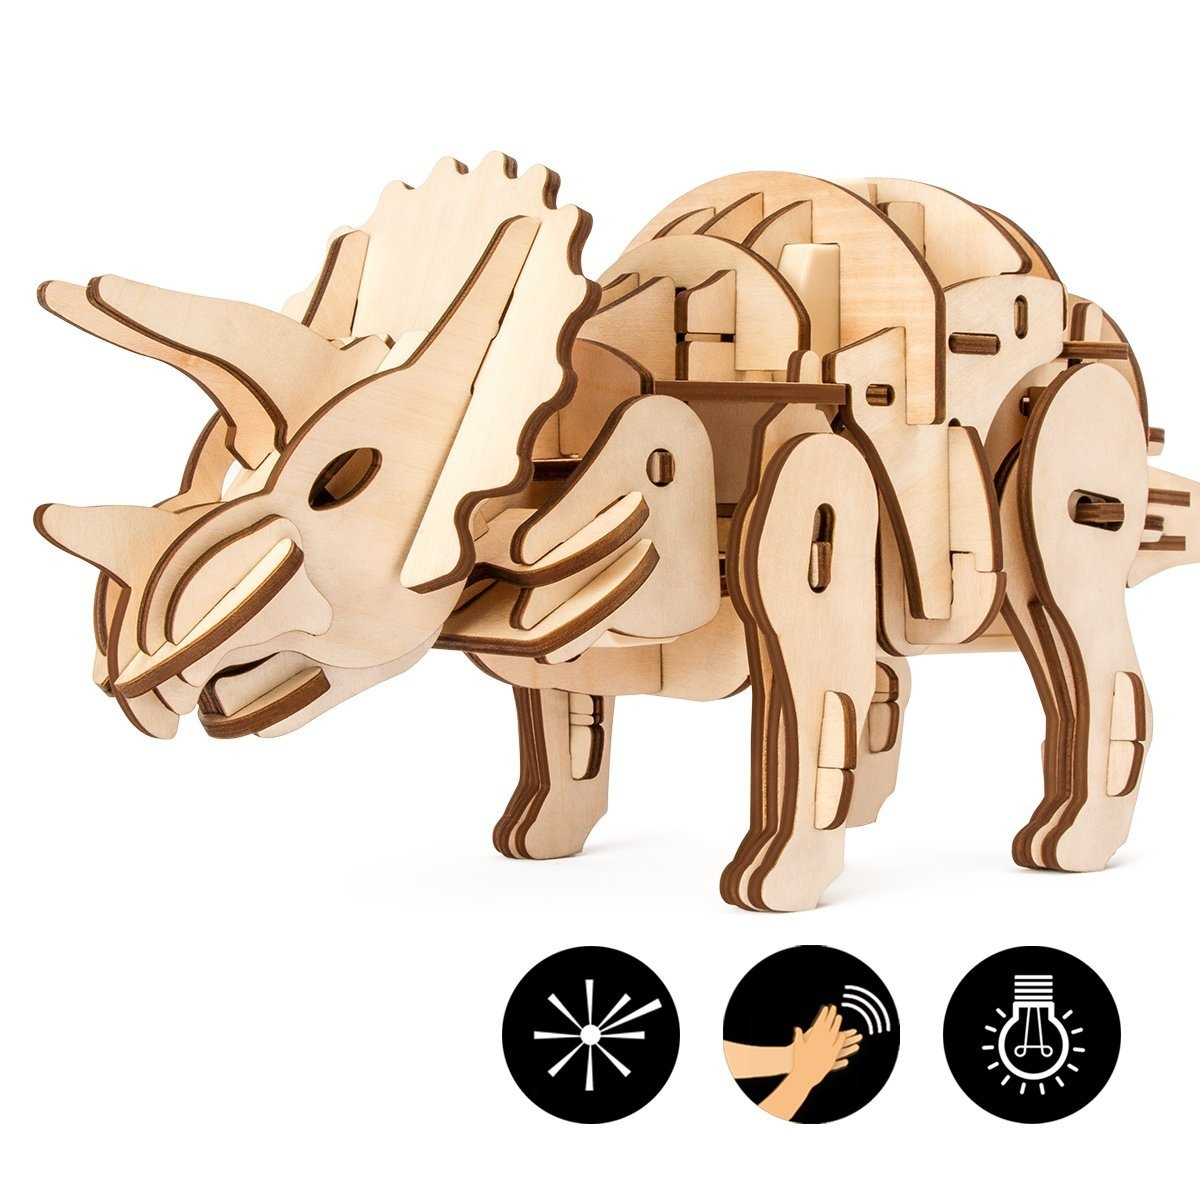 ROBOTIME Dinosaur Building Toys 3D Grown-Up Puzzles Laser-Cut Wood Craft  Kits 3 Control Approaches Robot Triceratops Toys Best Birthday Gifts for  Kids